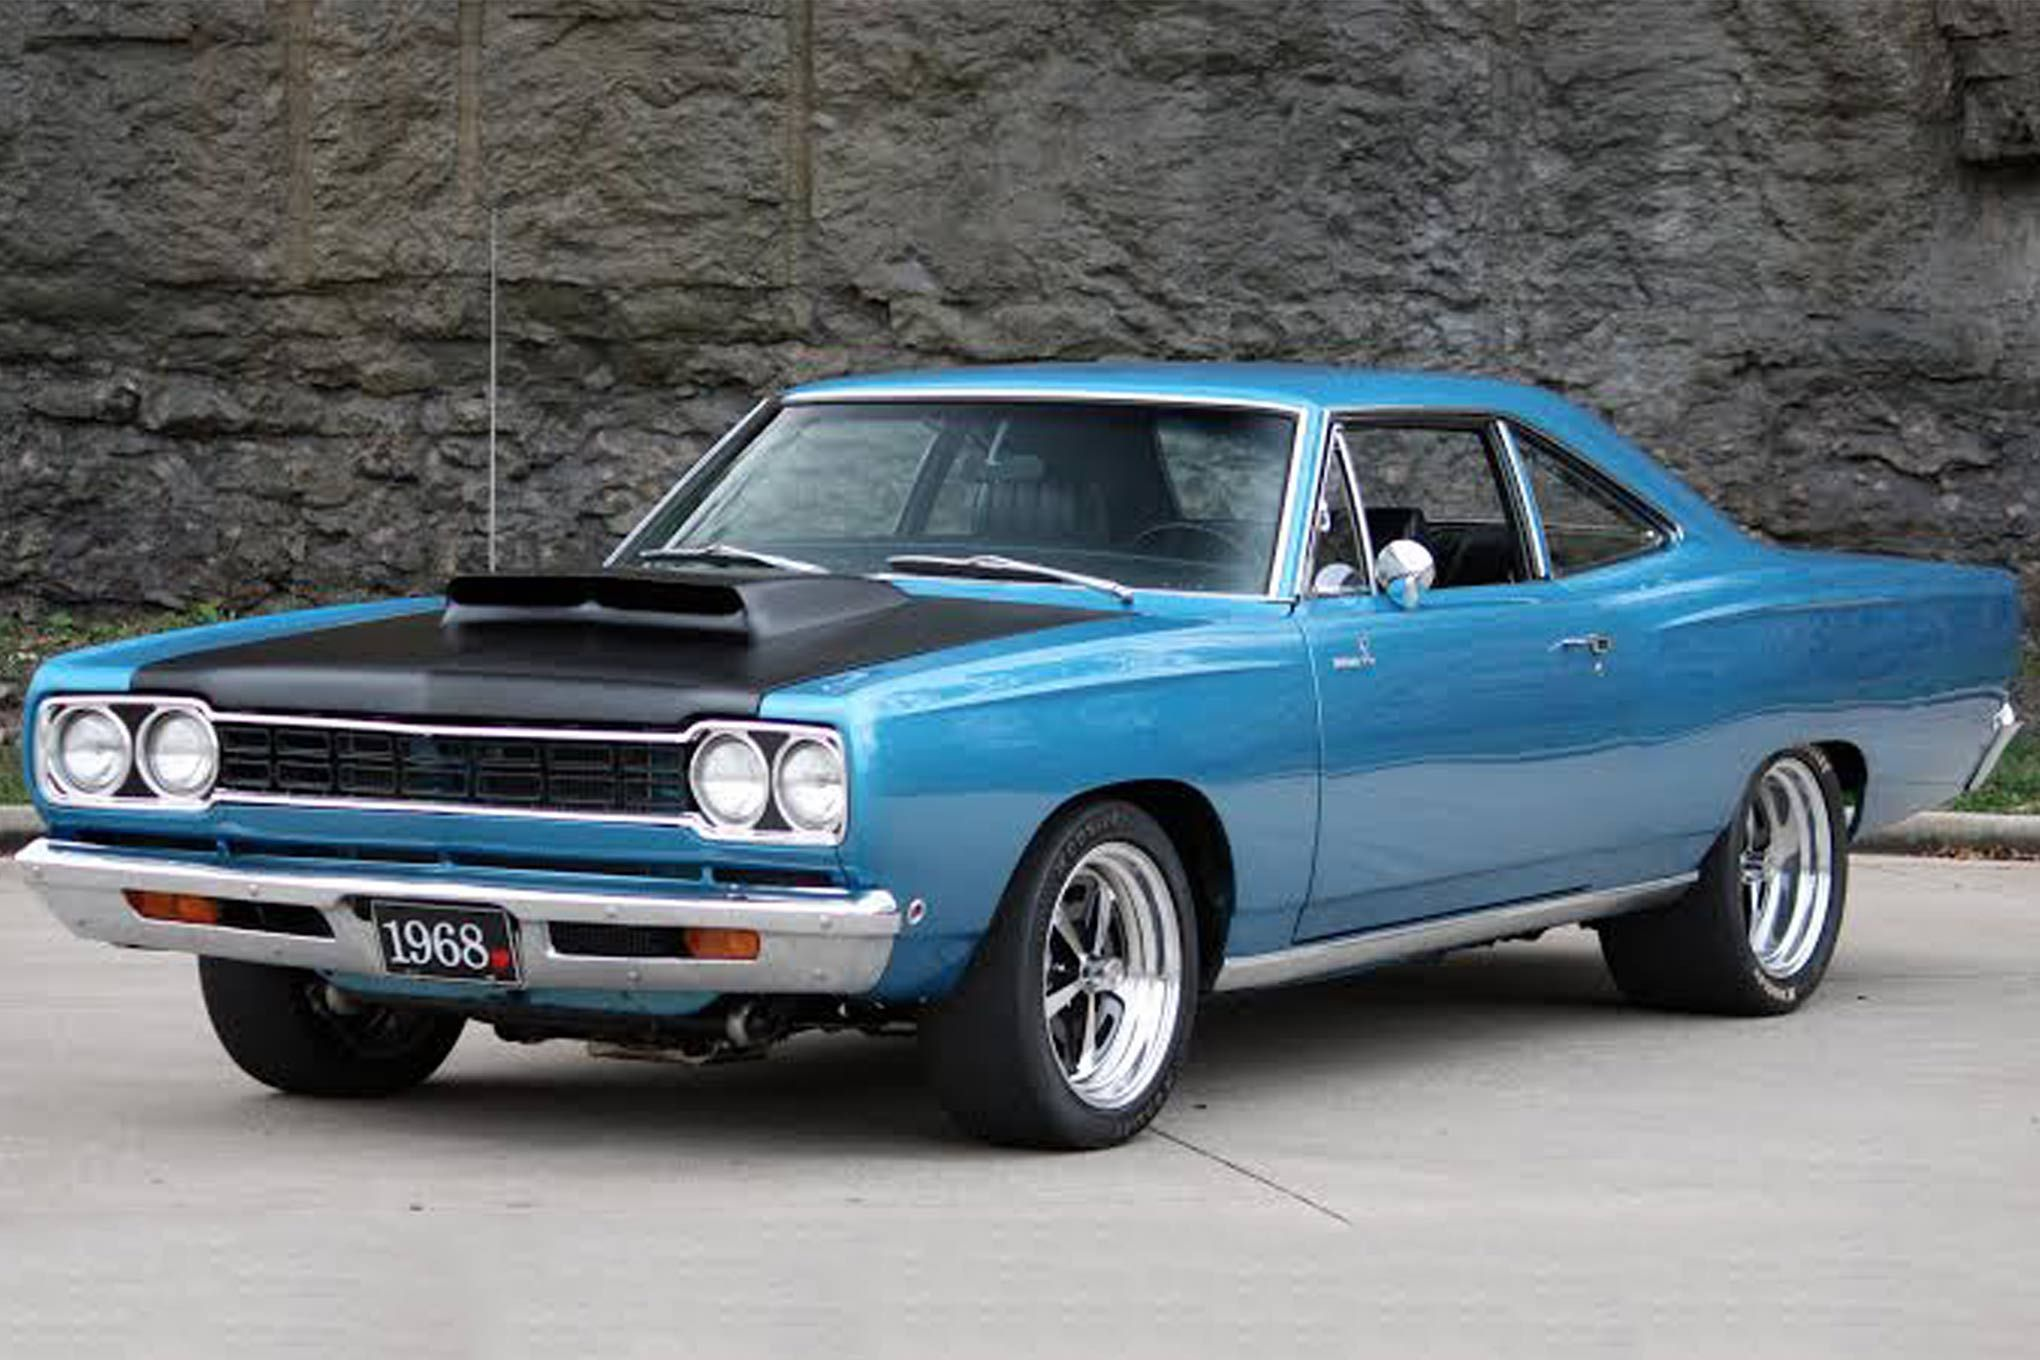 Best 25+ Plymouth muscle cars ideas on Pinterest | Muscle cars, American muscle cars and Dodge ...